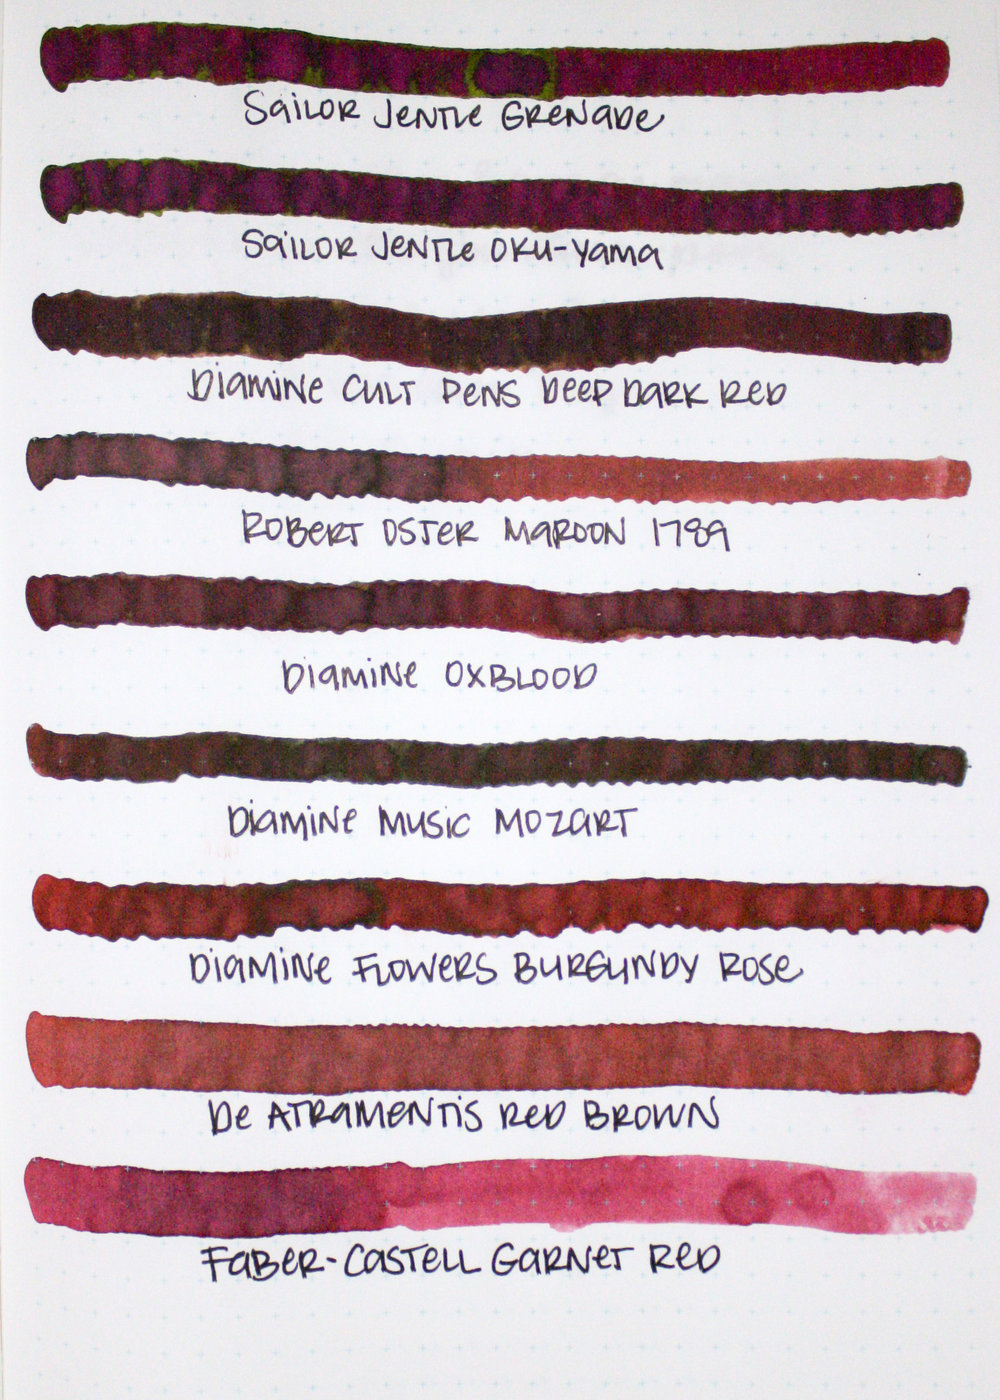 Similar inks... - The ink that looks the closes to Grenade is Sailor Jentle Oku-Yama (they are VERY similar).The next closest is Diamine Burgundy Rose, from the flowers set. It has a similar sheen, but is more red than Grenade and Oku-Yama.